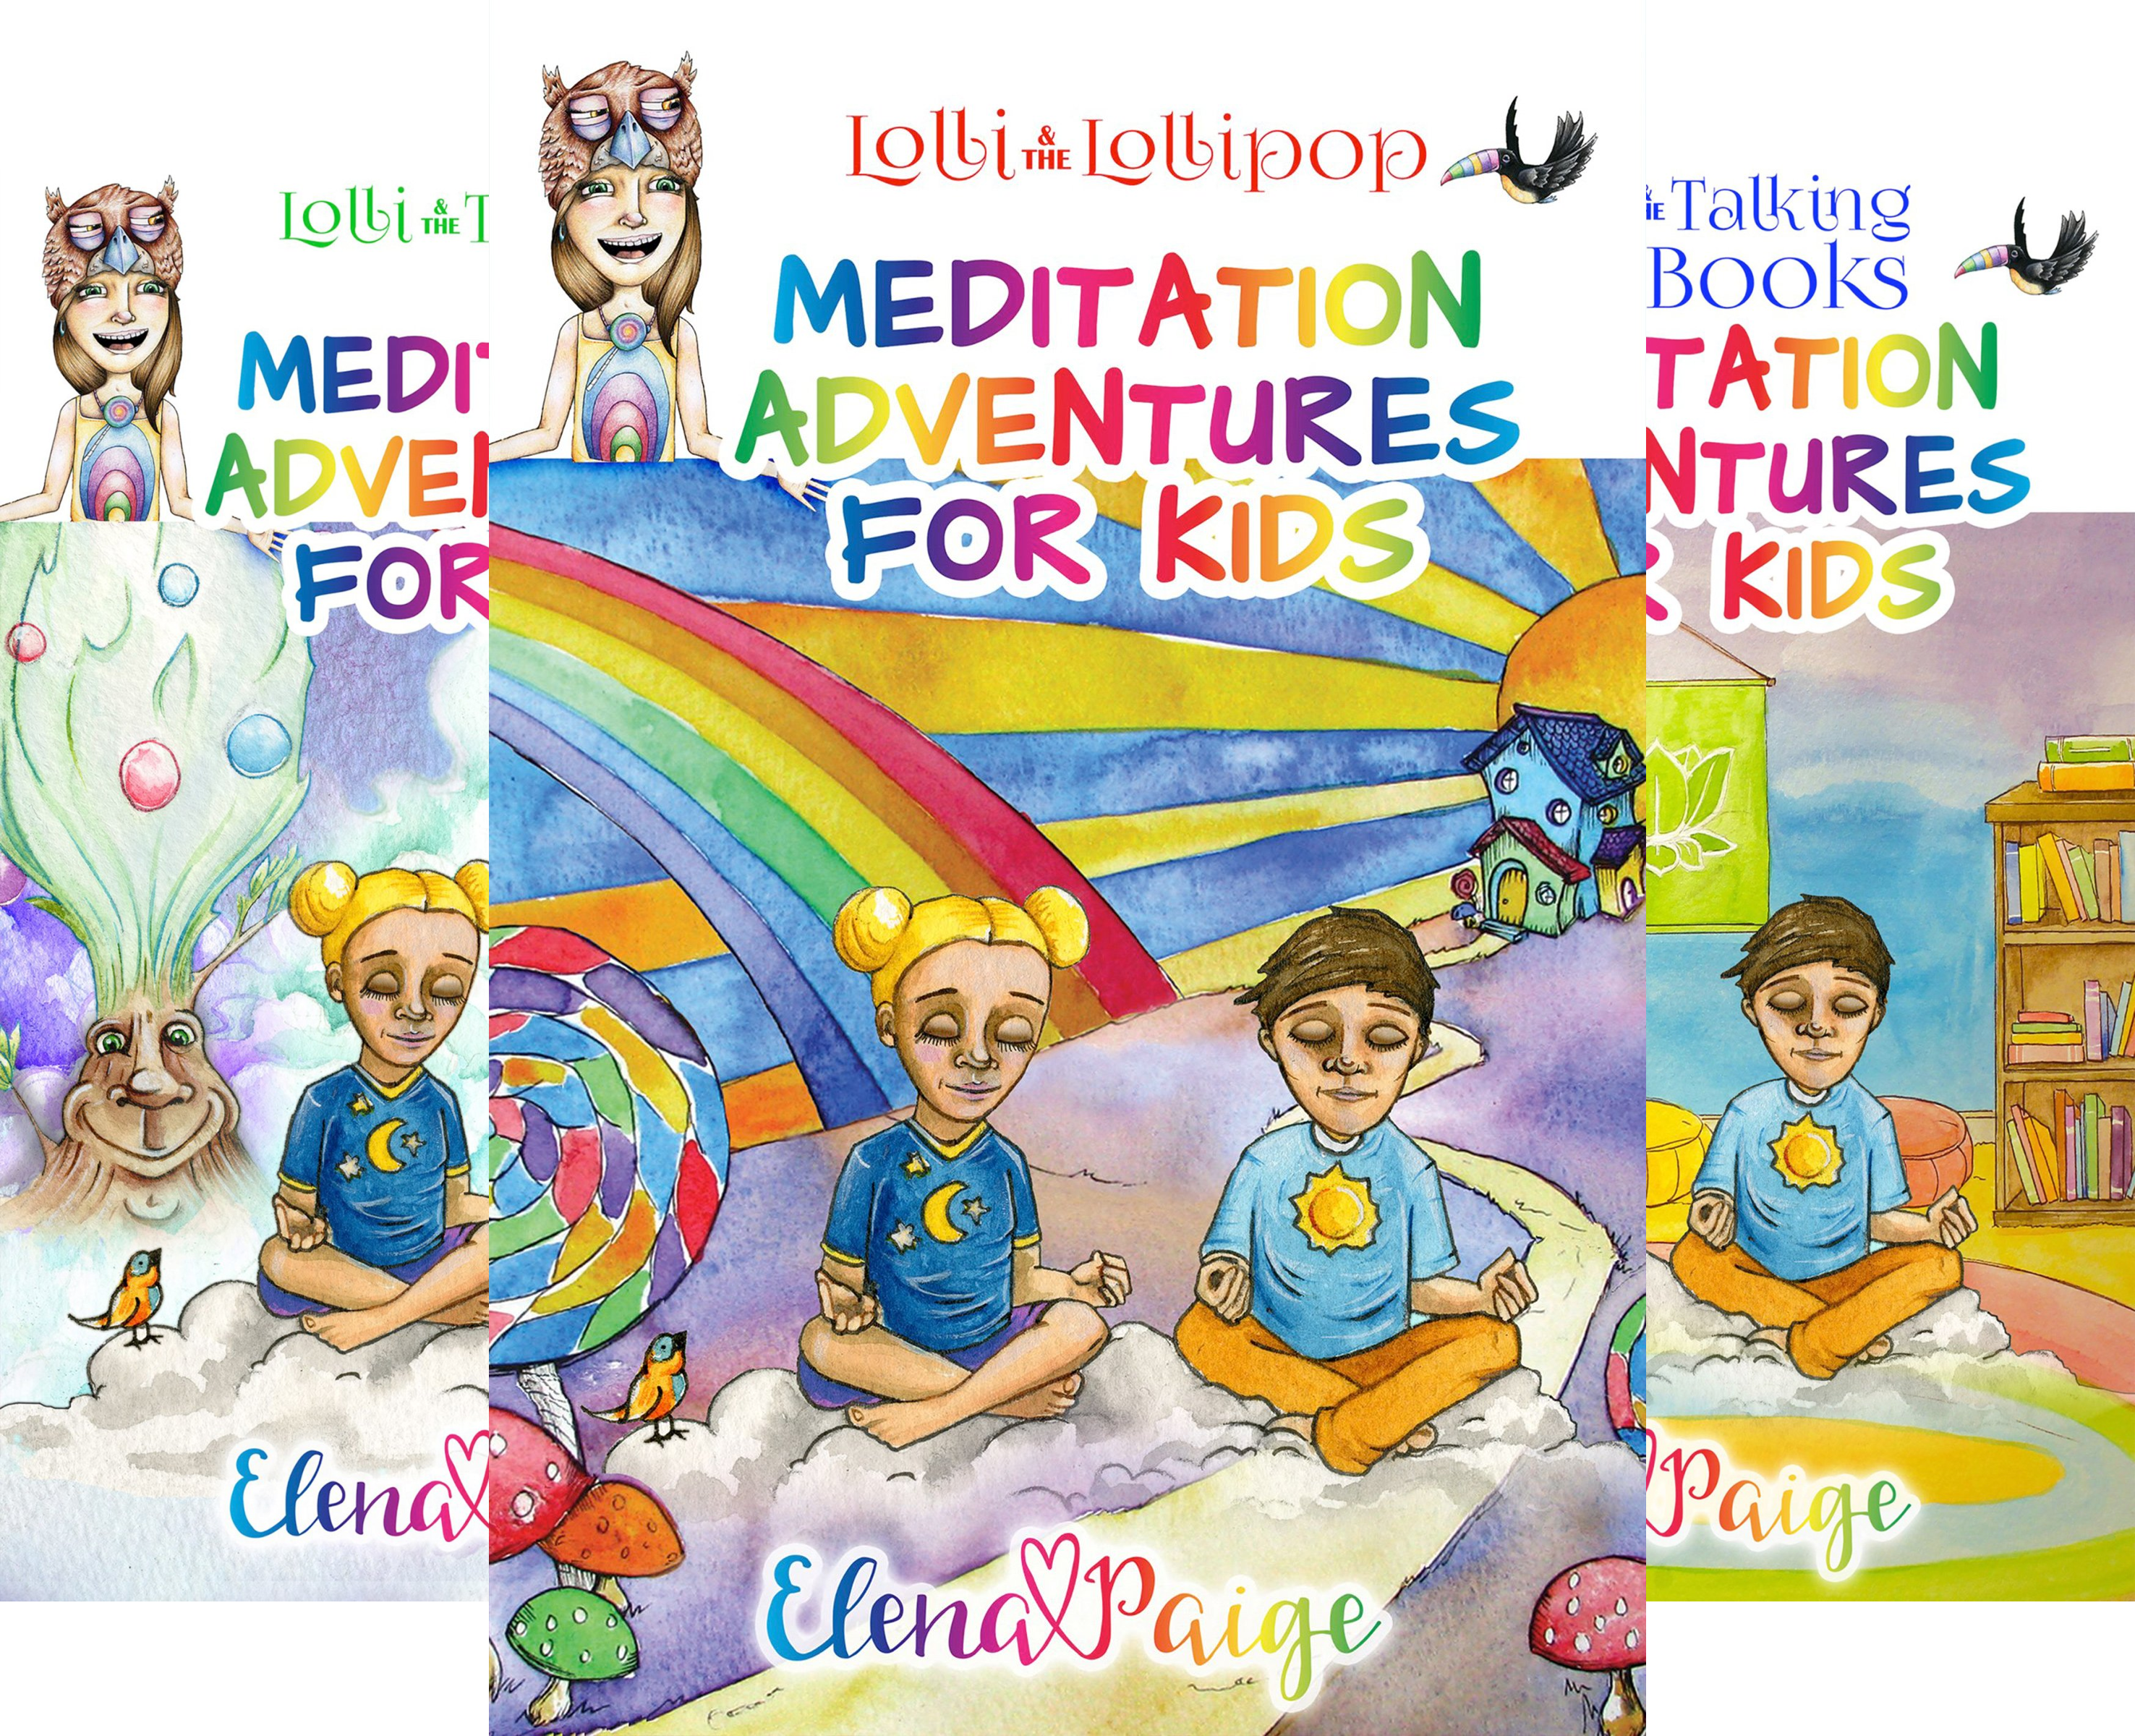 MEDITATION ADVENTURES FOR KIDS (7 Book Series)